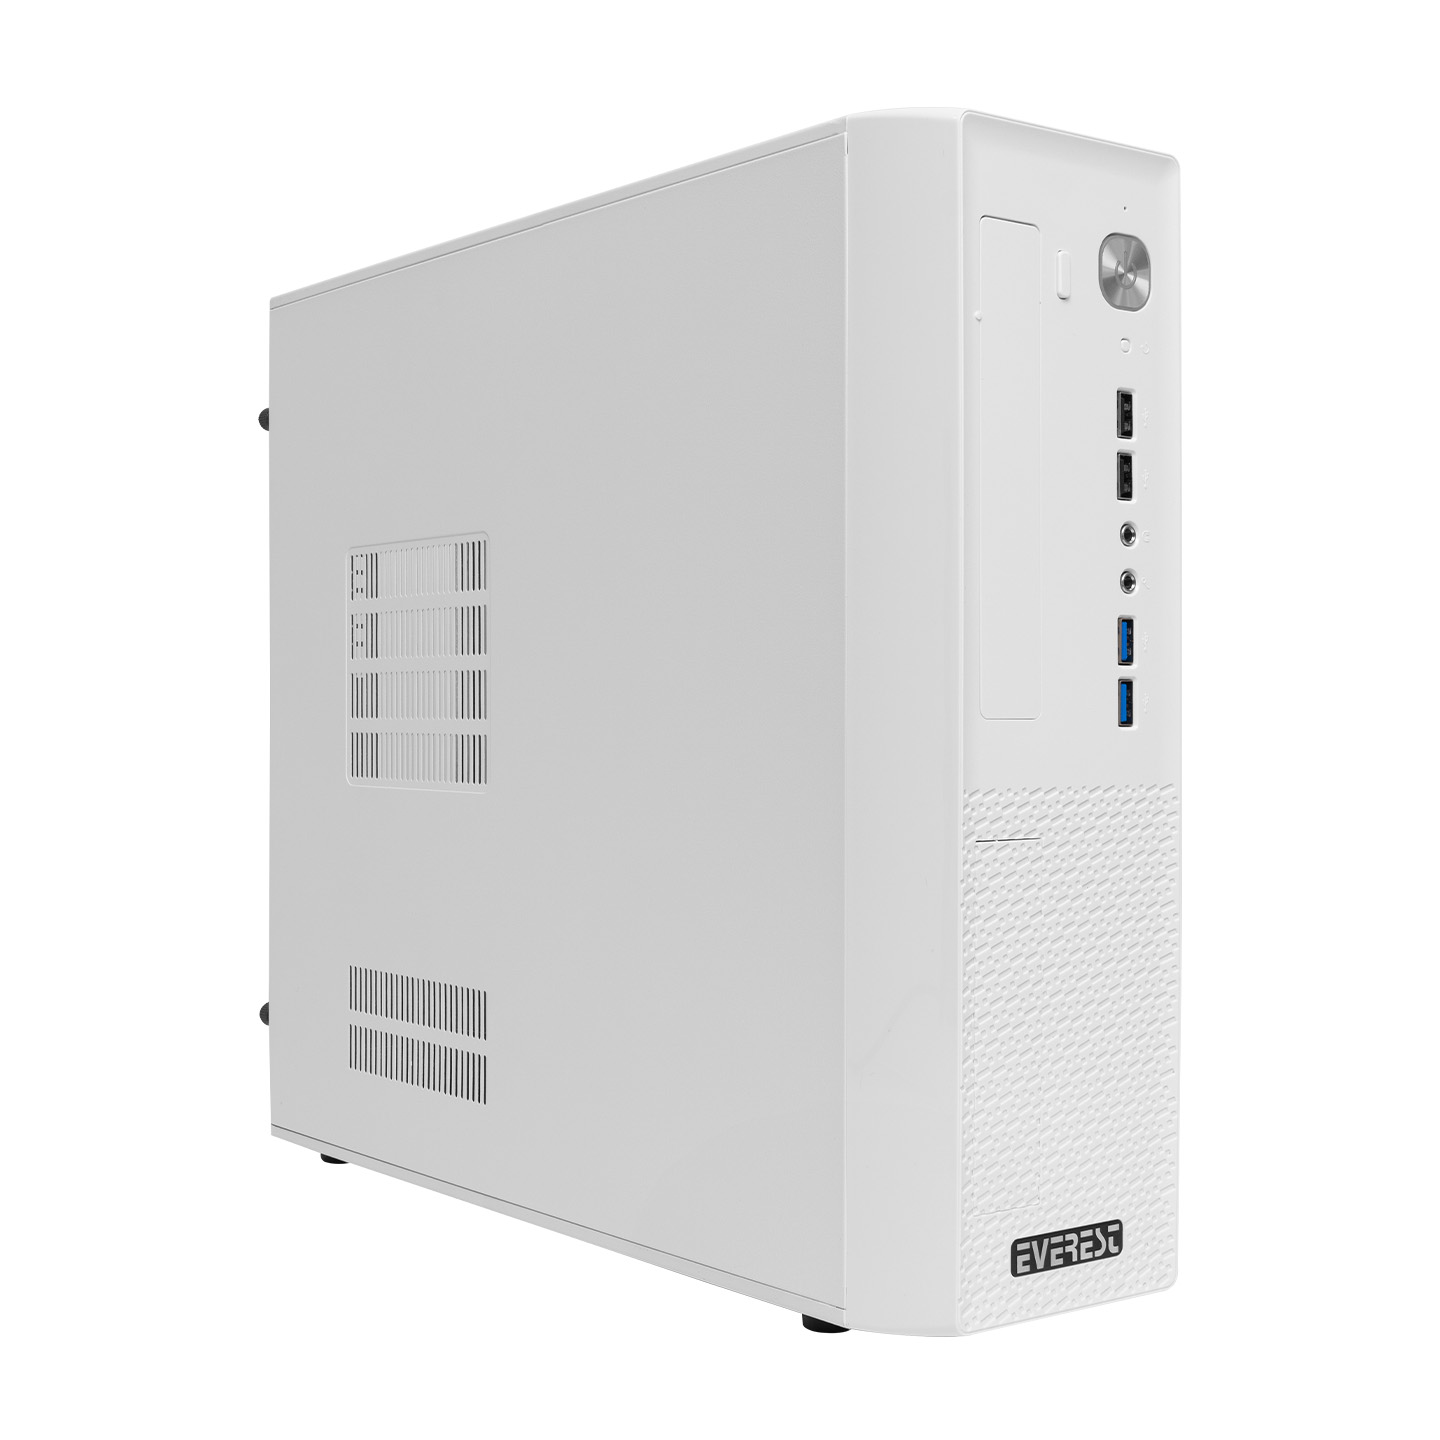 Everest TFX01 200W Beyaz Mini ITX Kasa